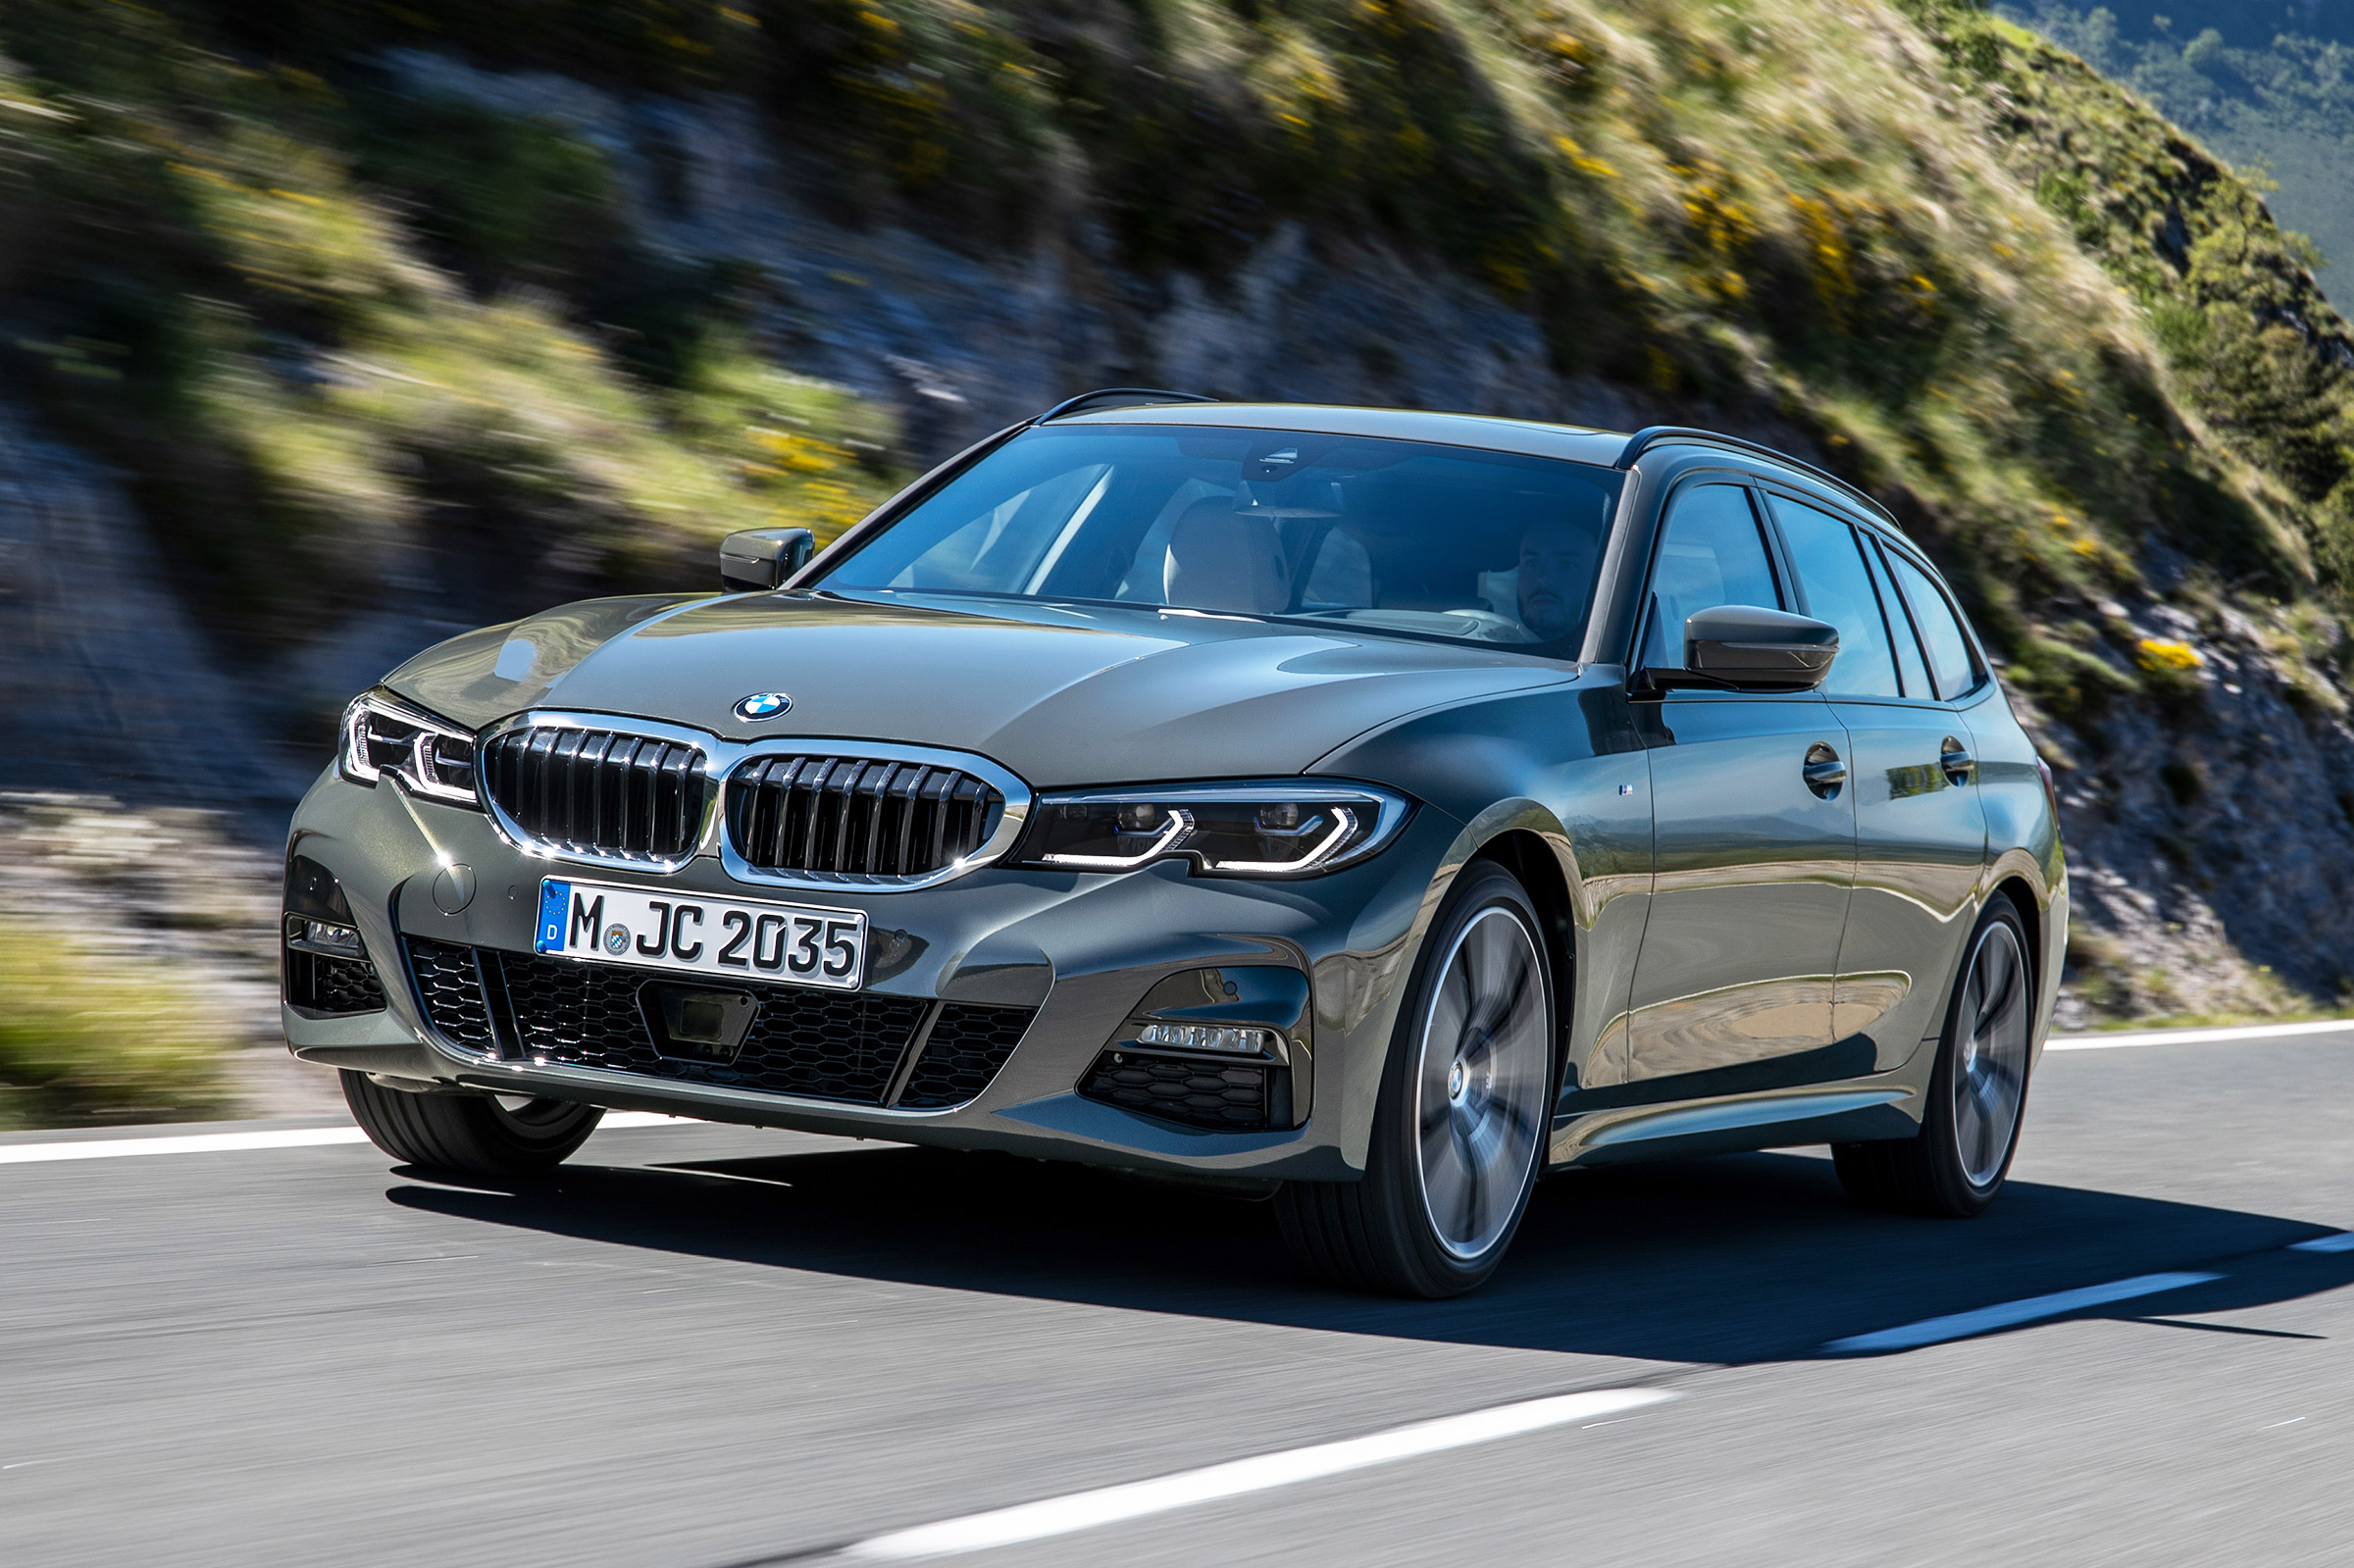 Bmw 3 Series Touring Interior Dimensions - picture.idokeren